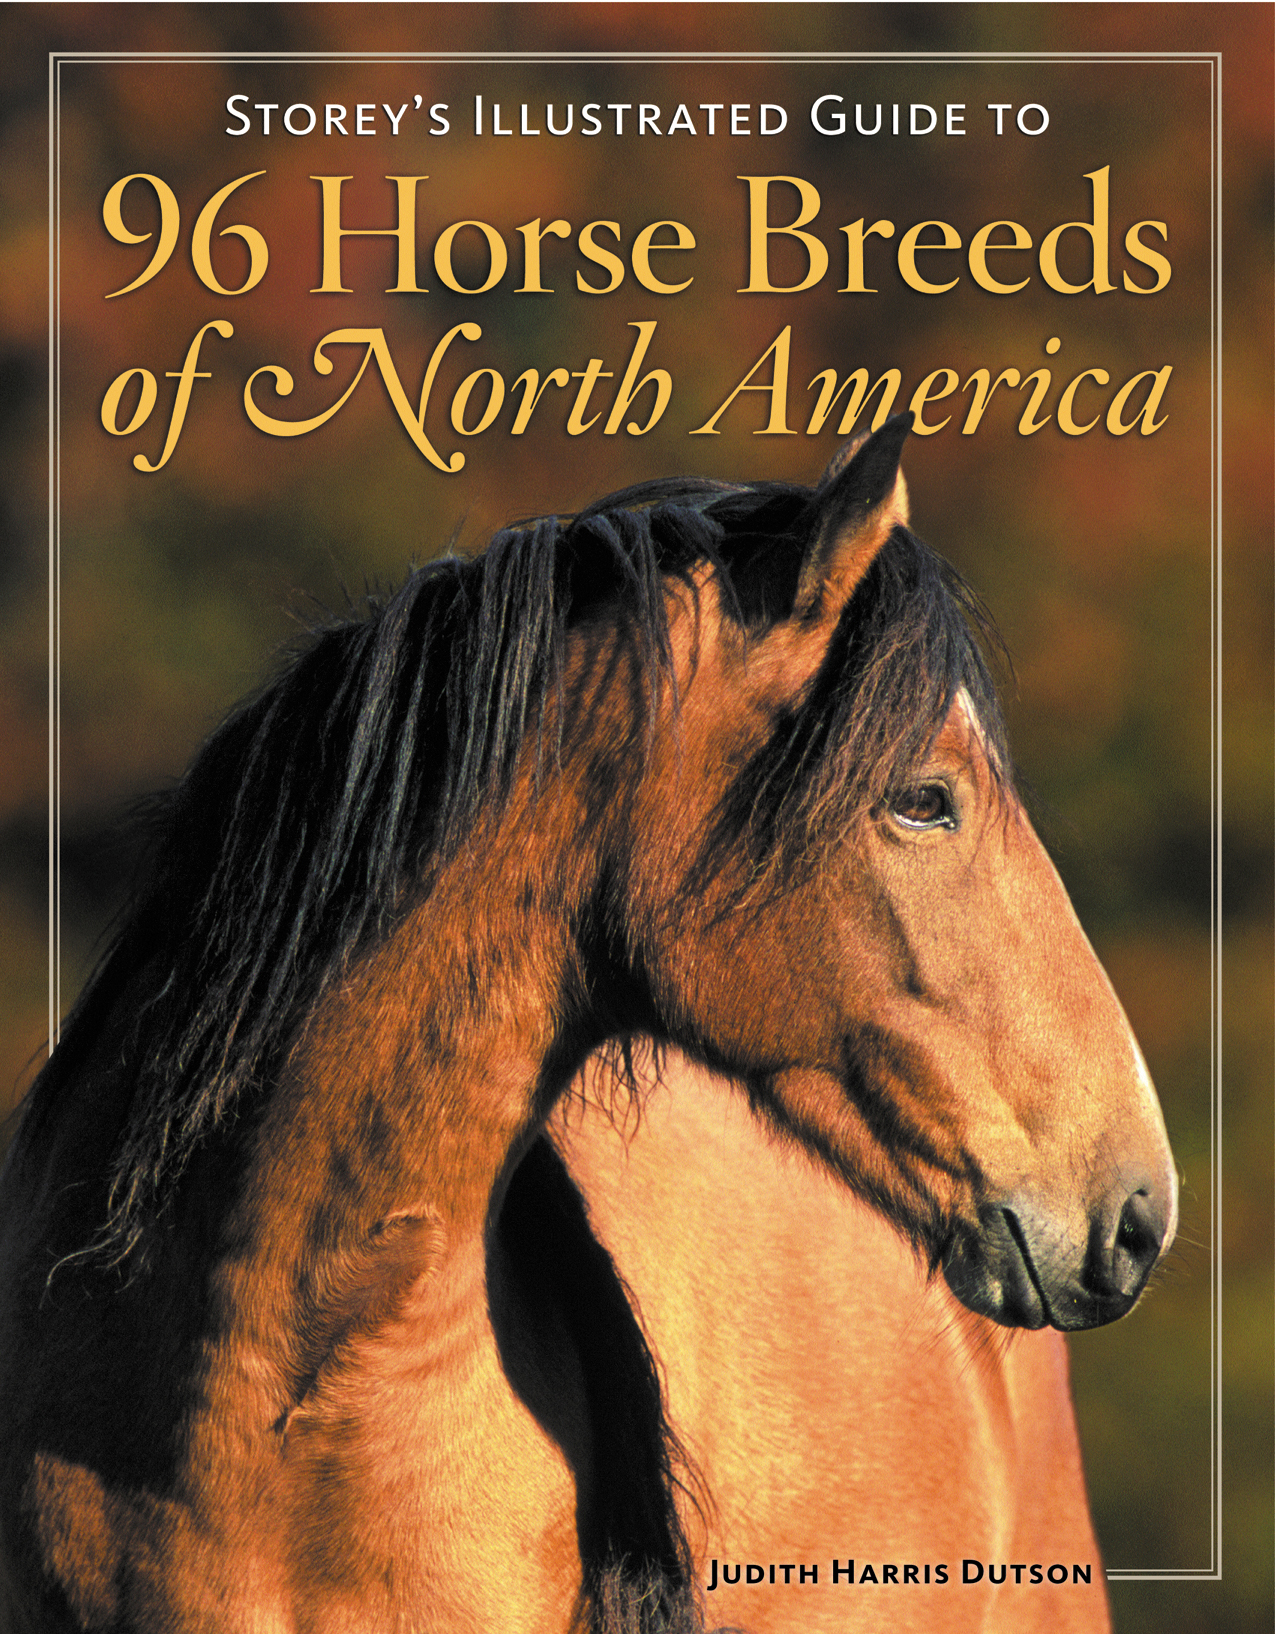 Storey's Illustrated Guide to 96 Horse Breeds of North America  - Judith Dutson